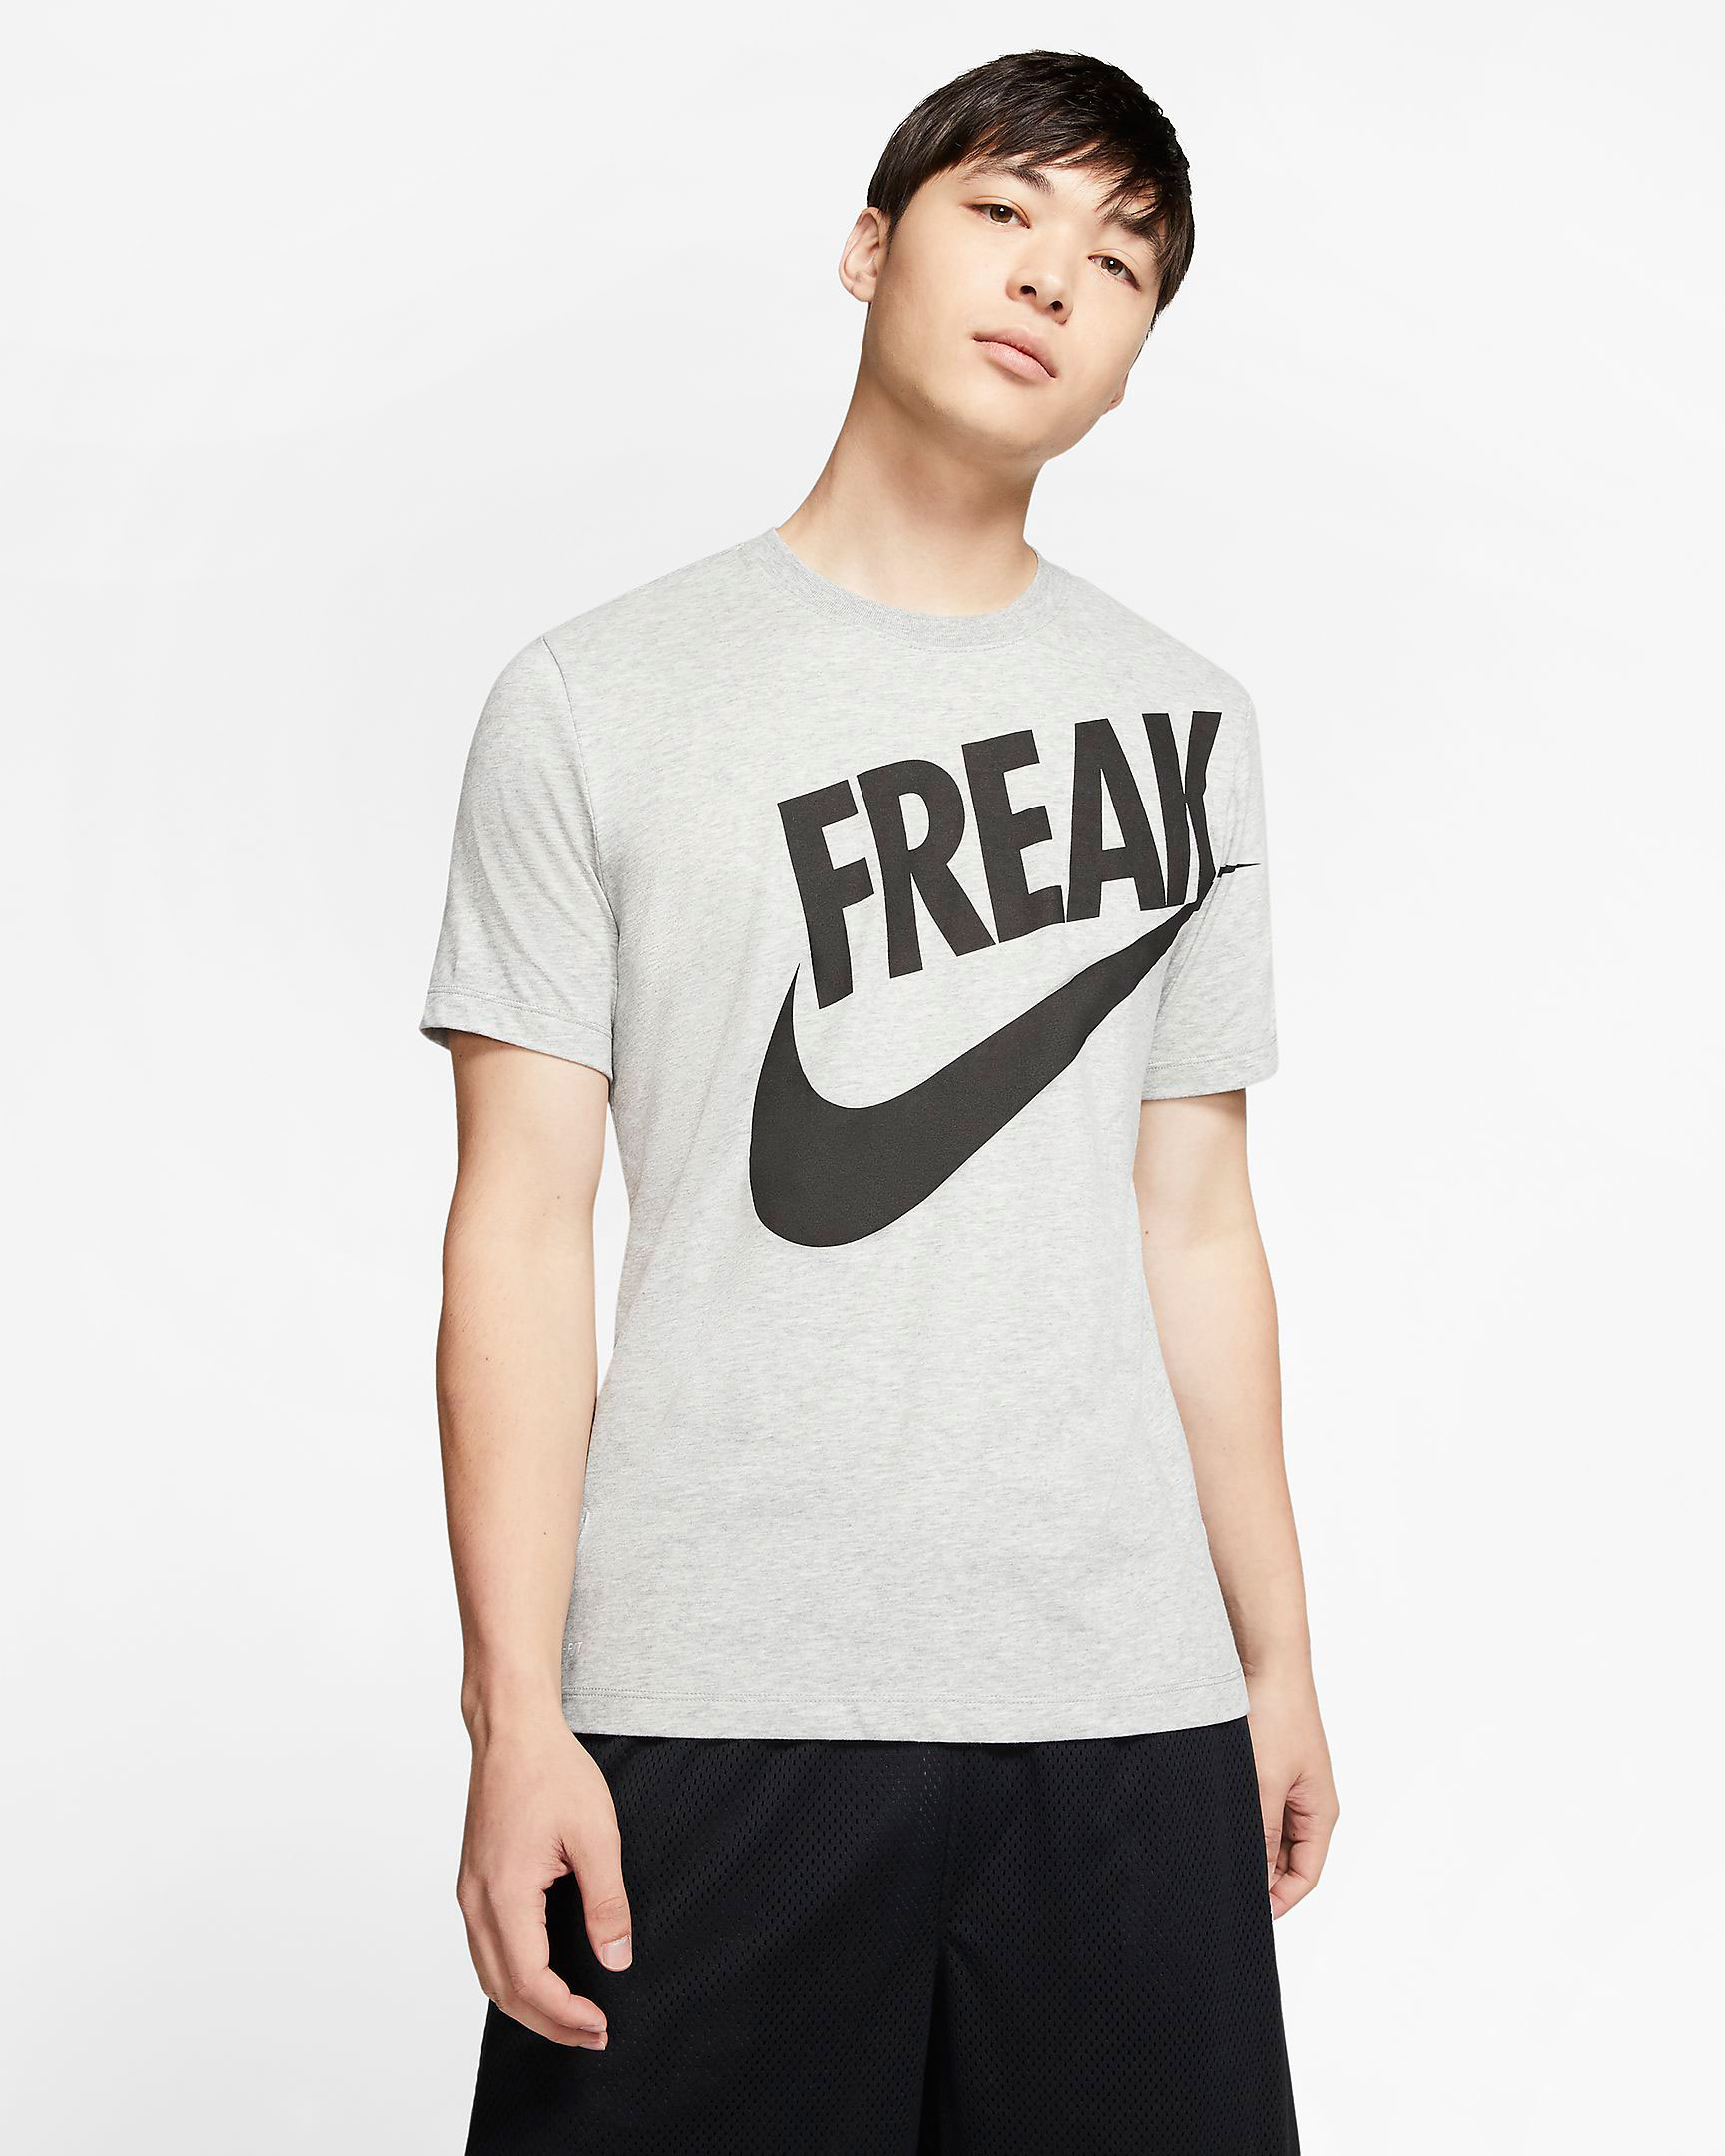 nike-giannis-freak-t-shirt-grey-black